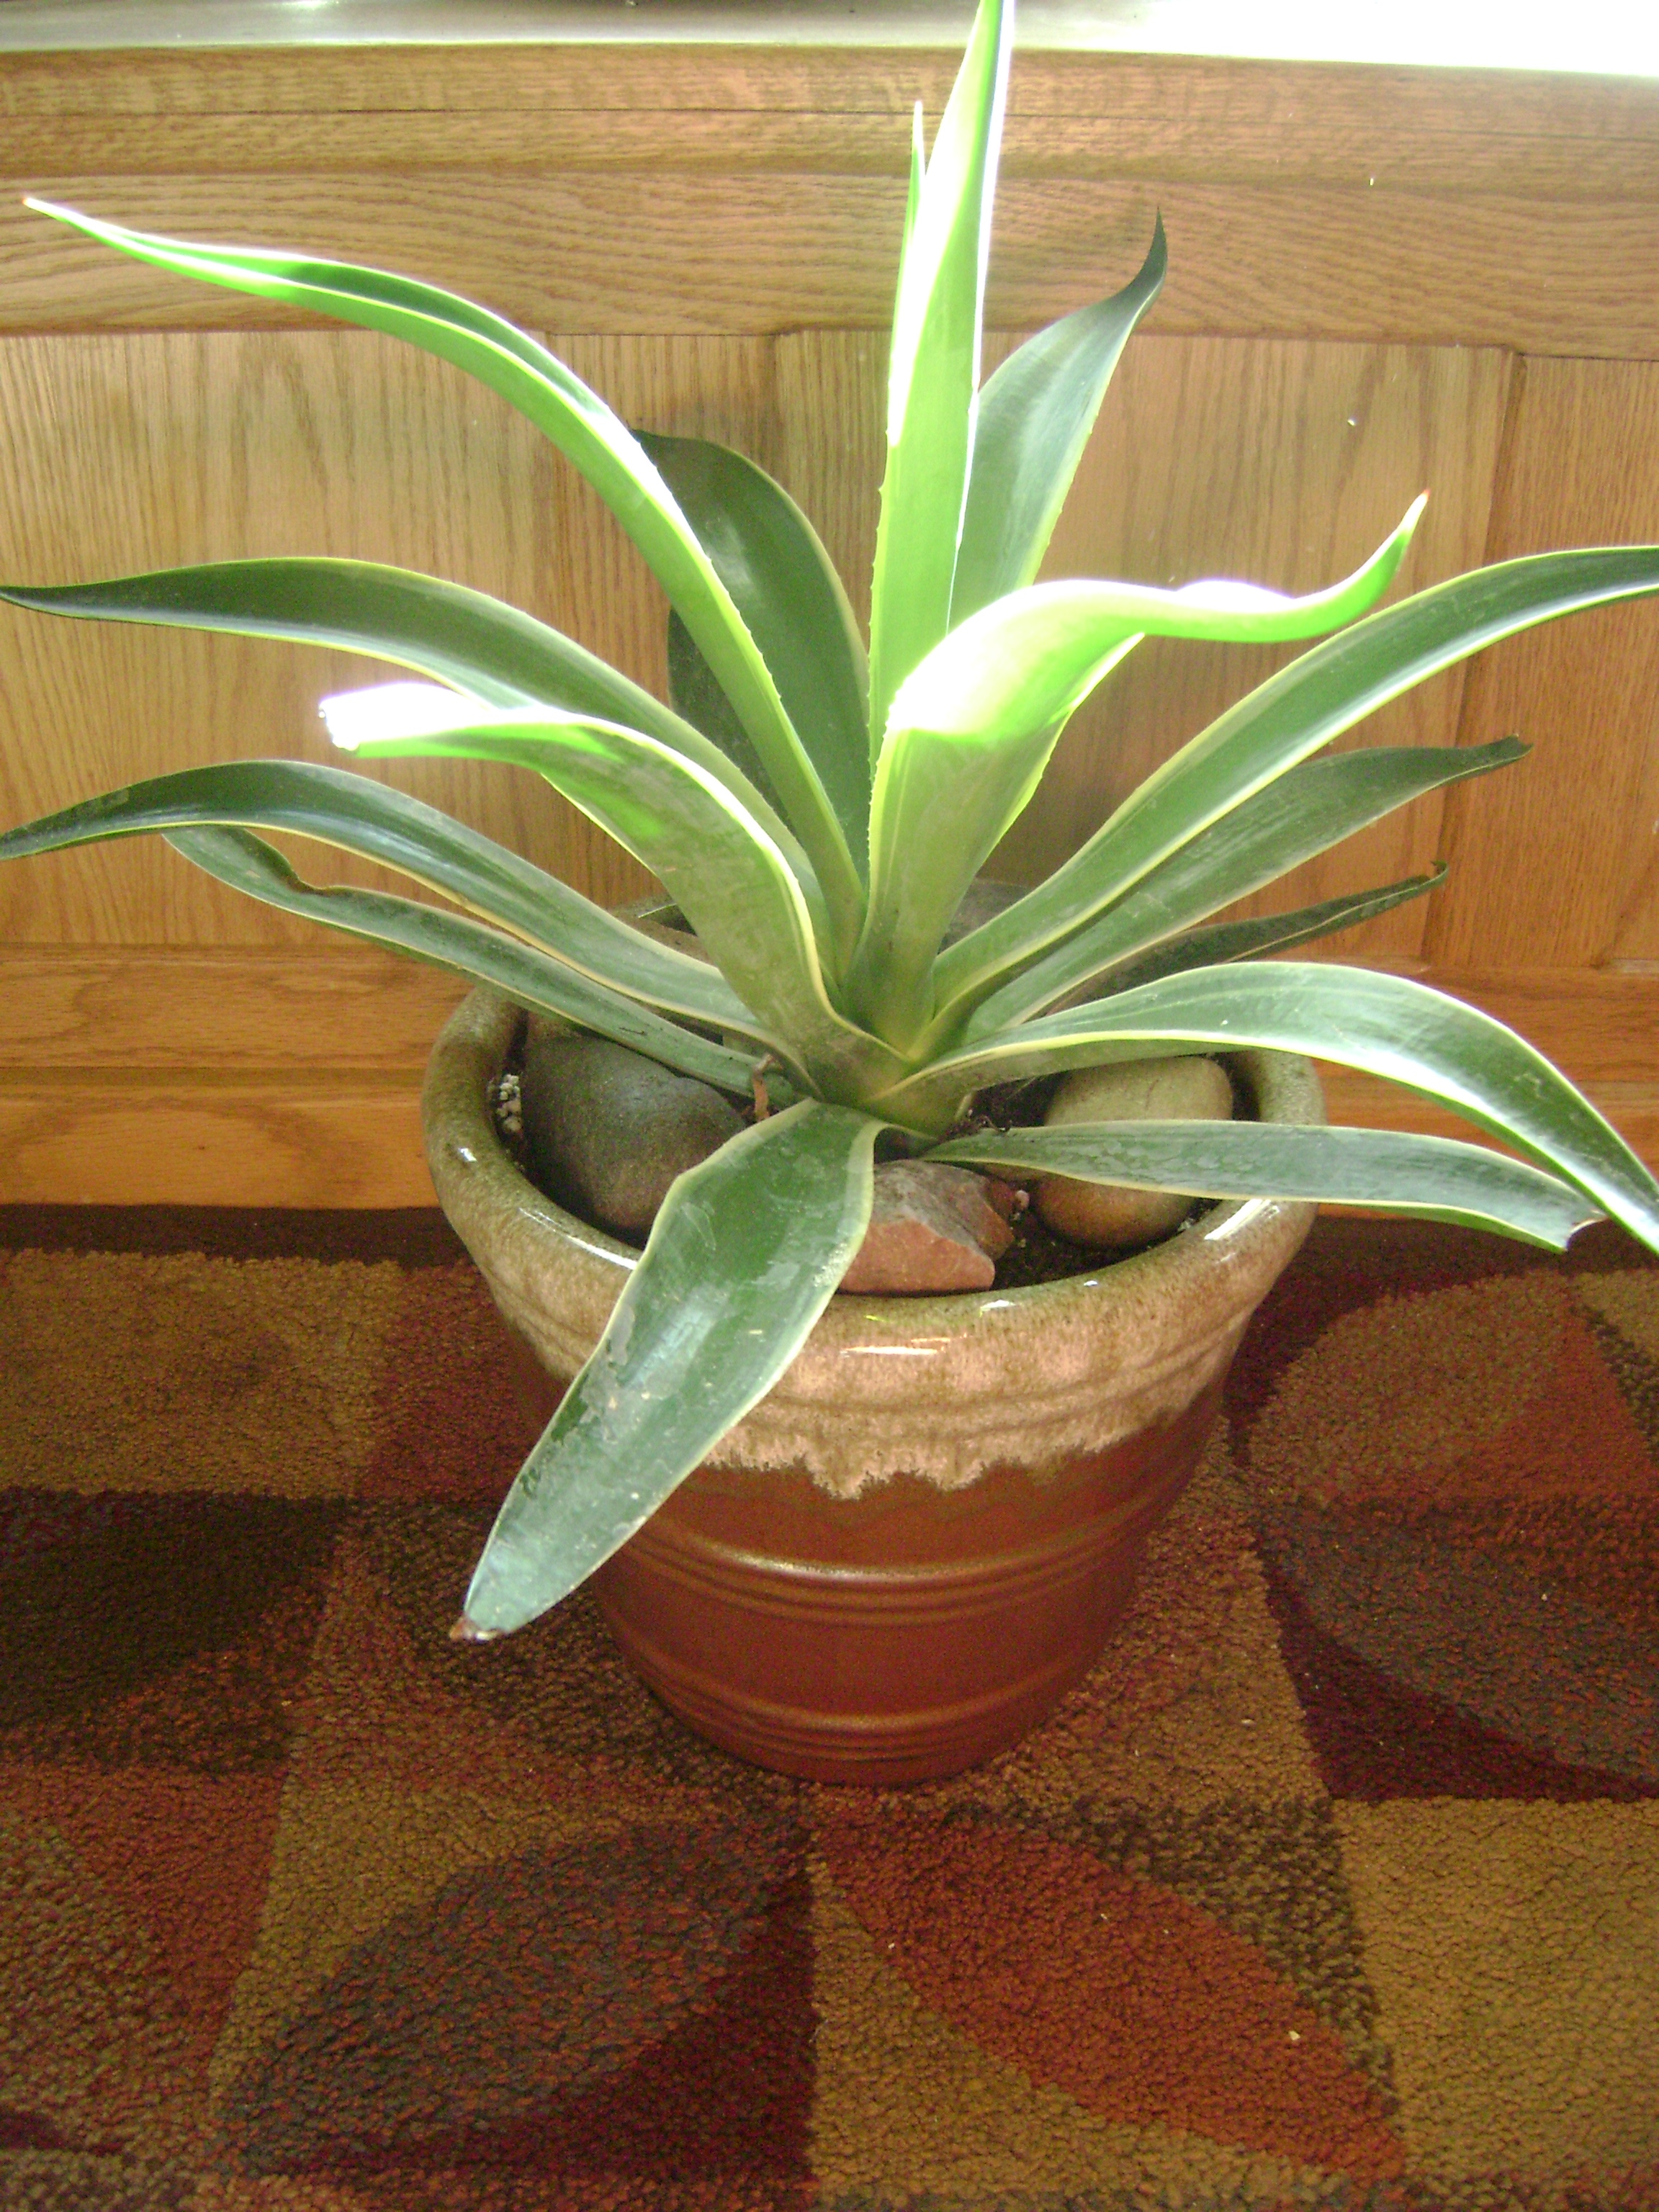 How to Grow Agave Desmettiana Variegata is considered a dwarf agave